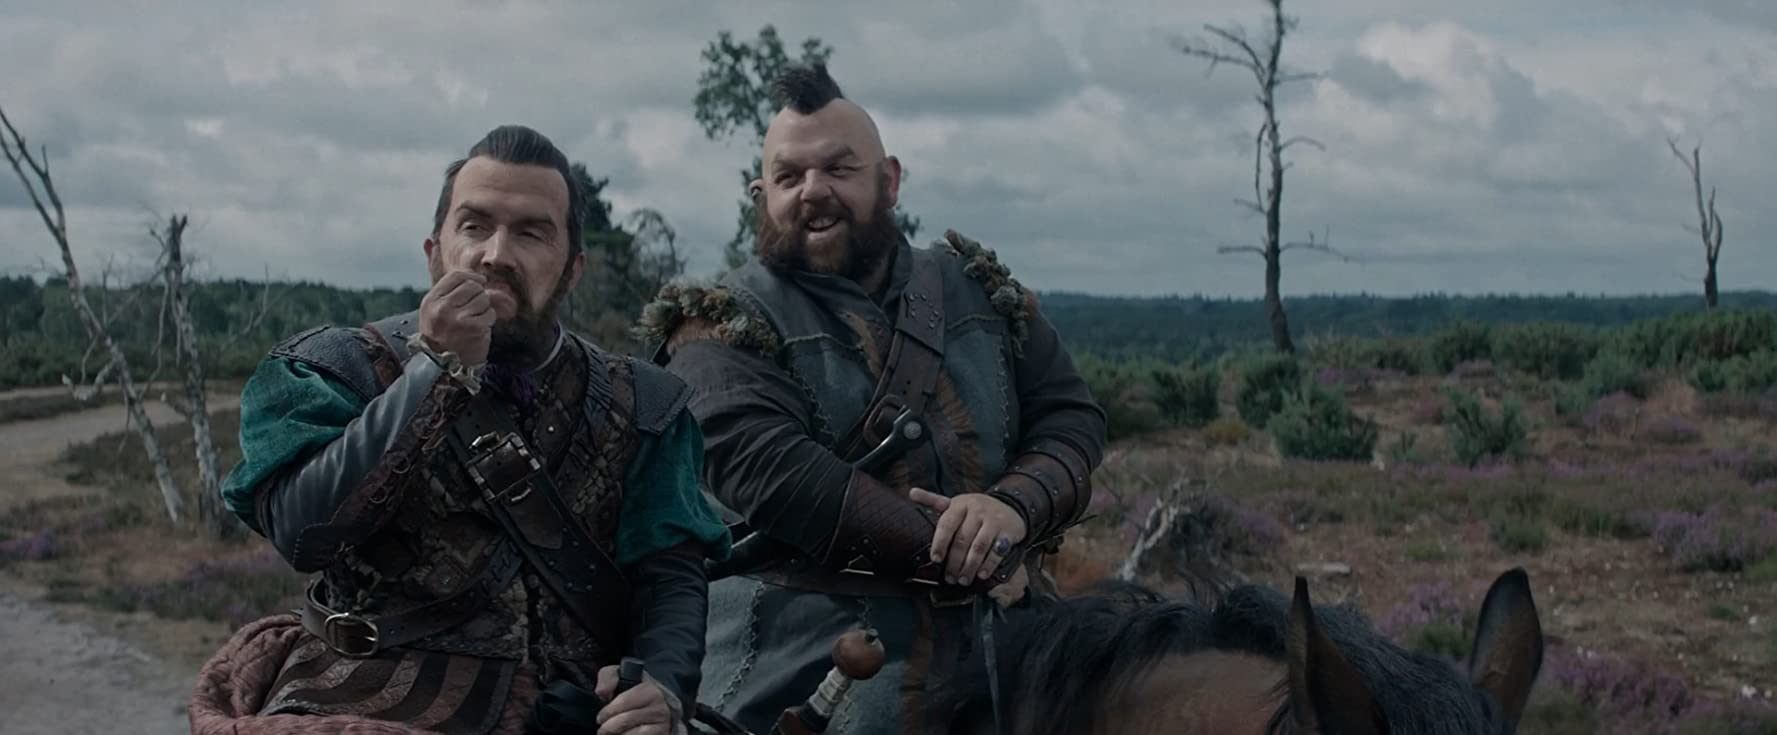 Rob Brydon and Nick Frost in The Huntsman: Winter's War (2016)